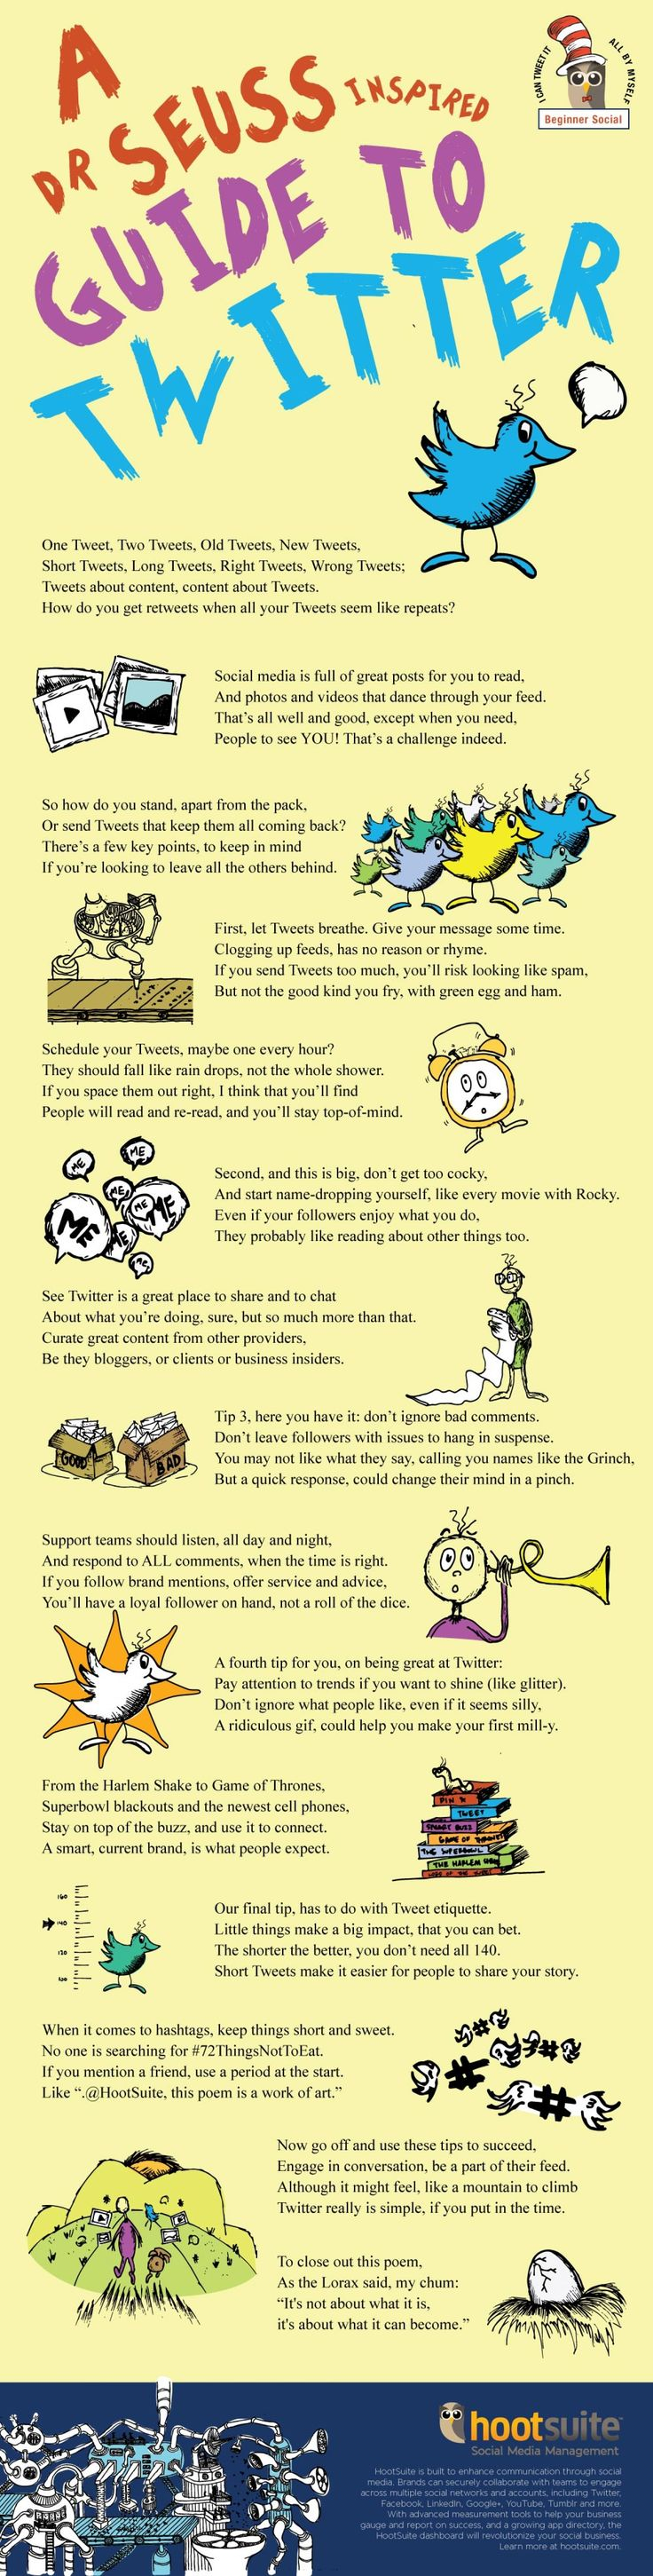 A Dr. Seuss-Inspired Guide to #Twitter #seuss [#infographic]